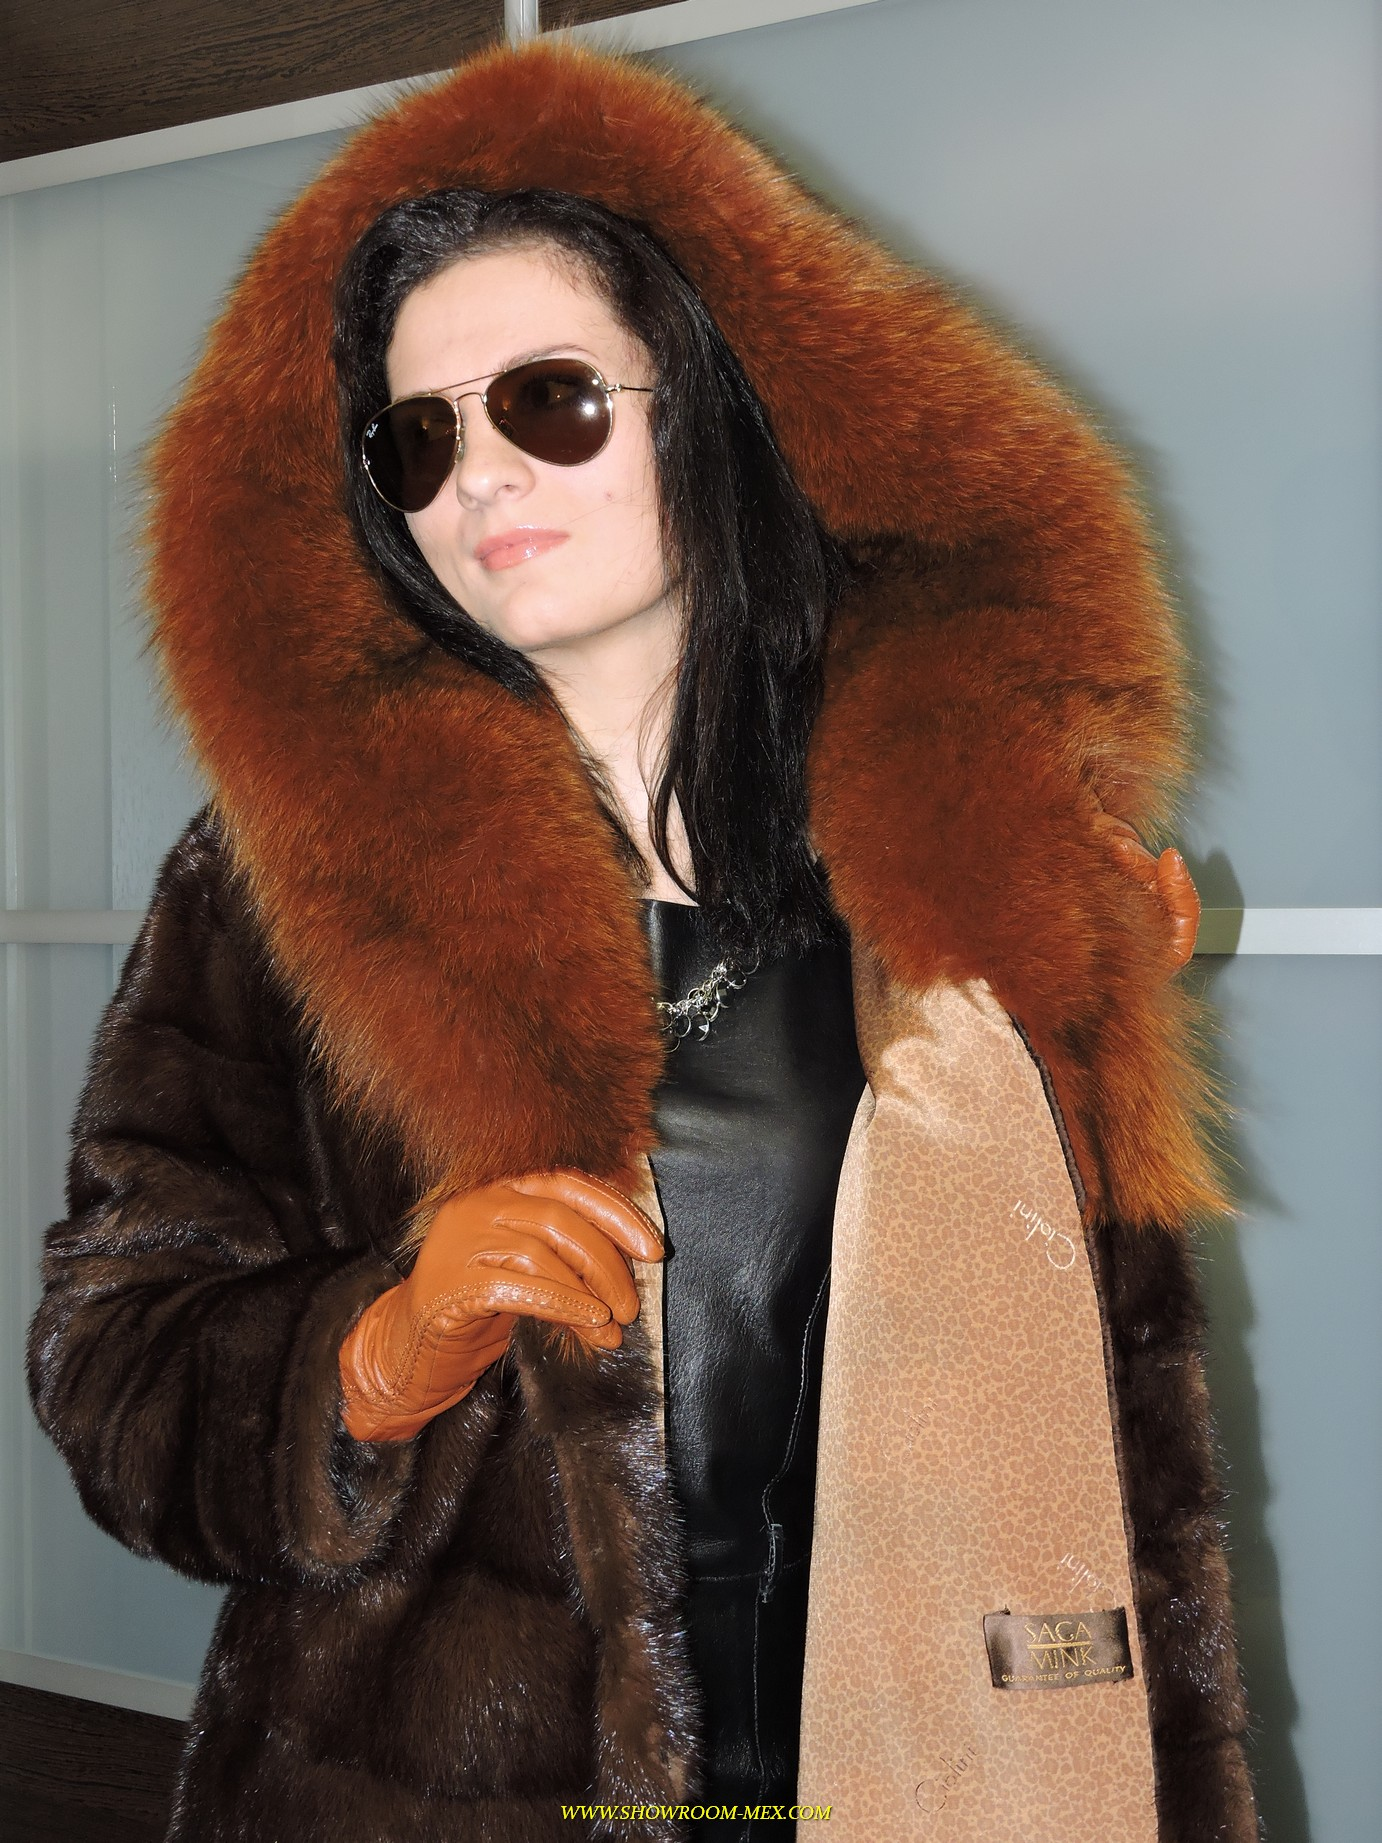 www.showroom-mex.com SAGA FUR FOX MINK COAT BOA17.JPG